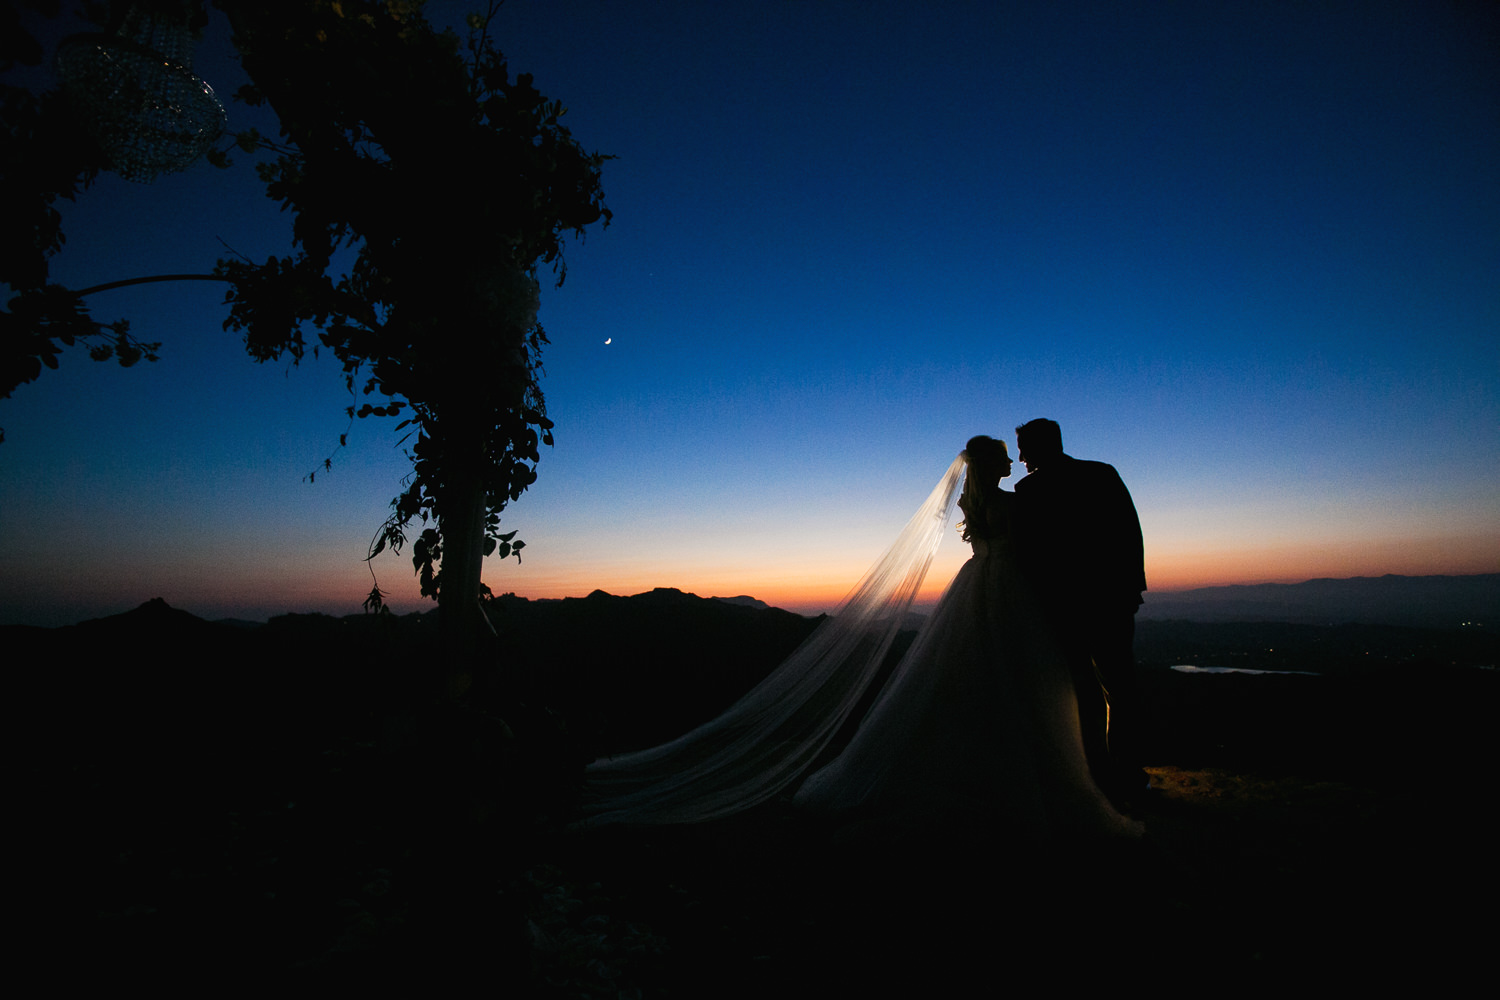 Malibu Rocky Oaks Photographer - Kissing In the Sunset